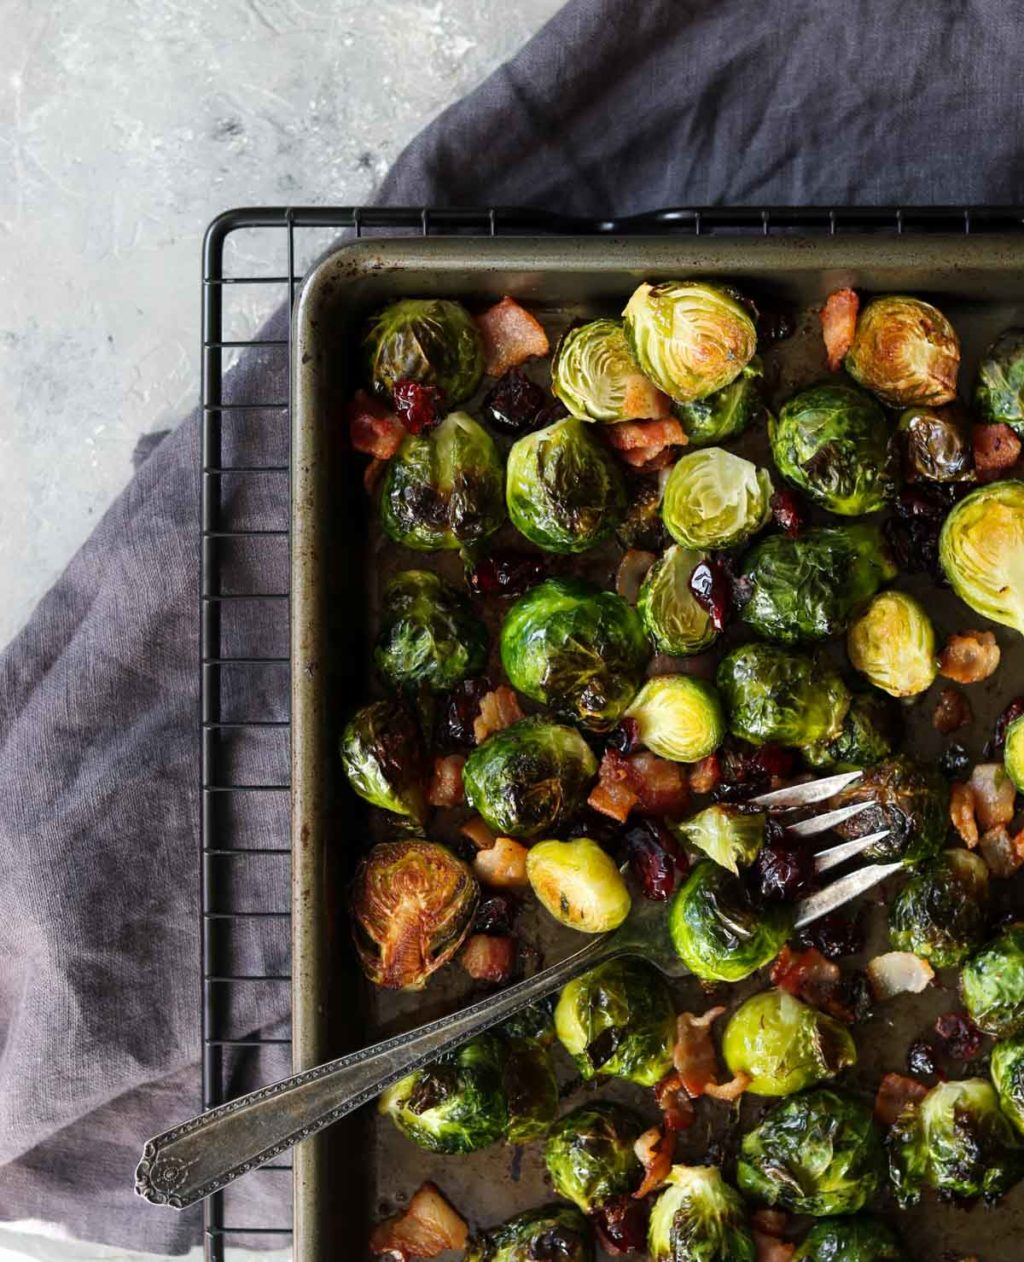 Oven roasted brussels sprouts on a sheet pan with a fork sitting on a black cooling rack